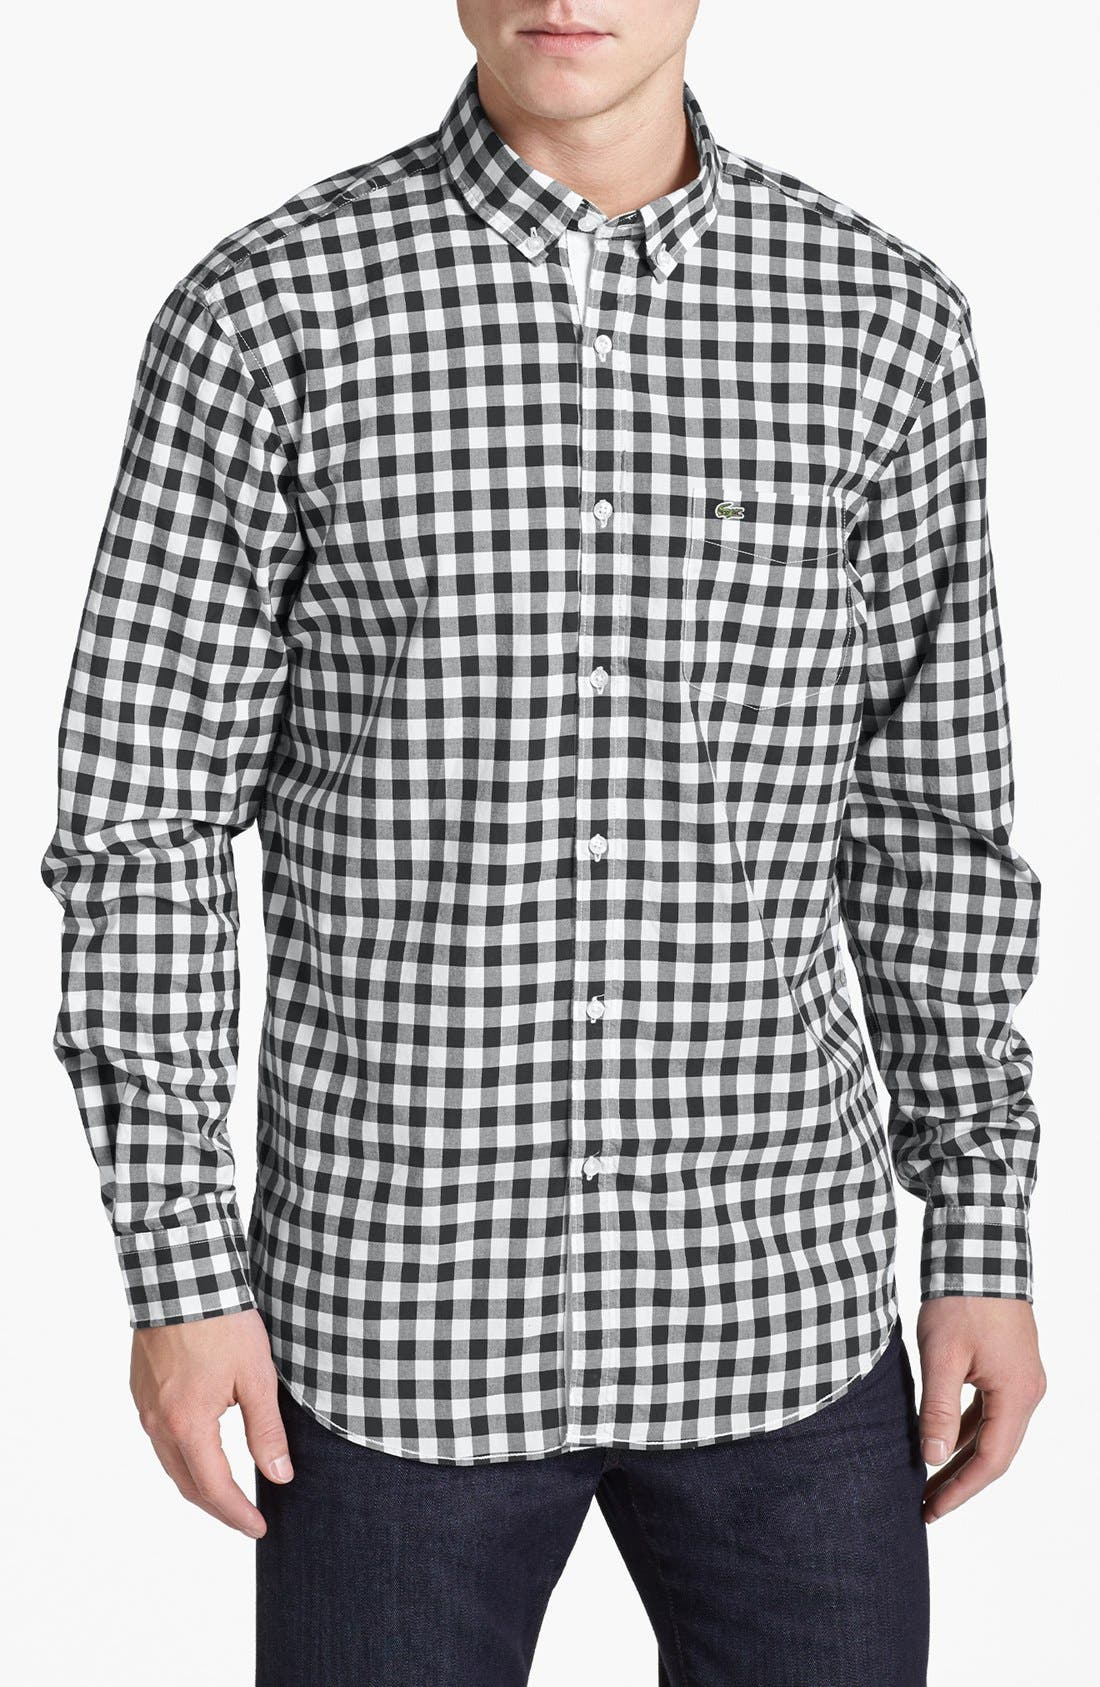 Alternate Image 1 Selected - Lacoste Gingham Poplin Shirt